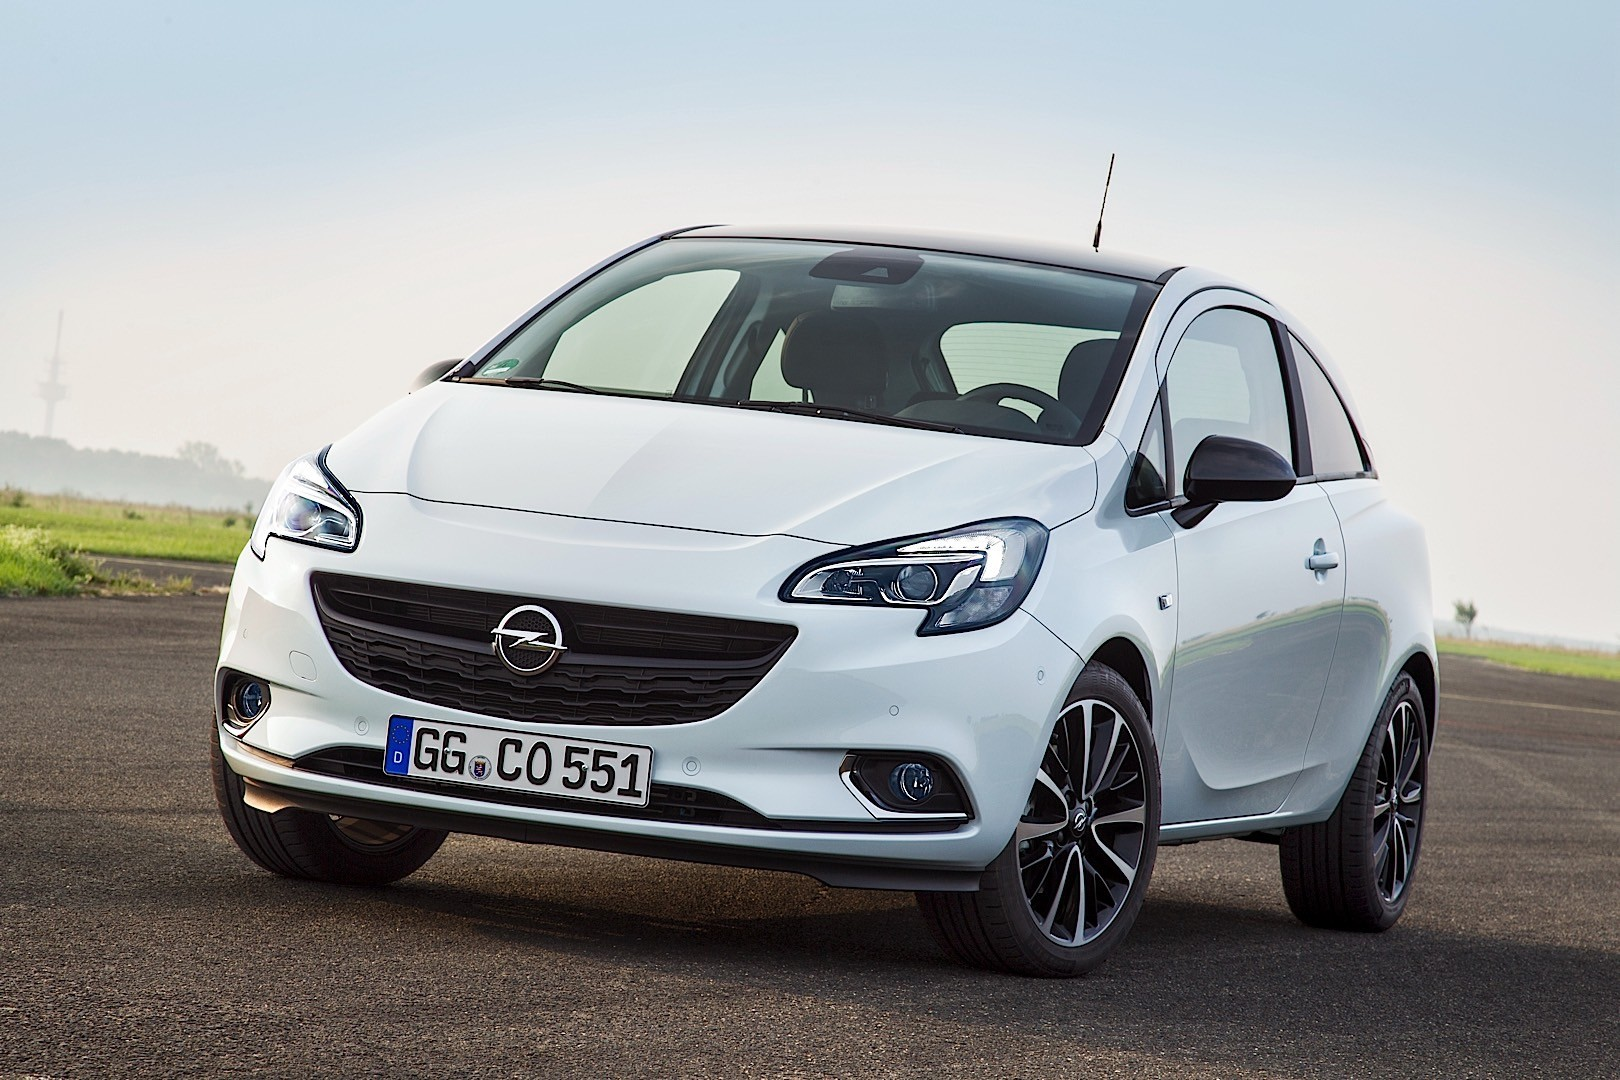 opel corsa 3 doors specs 2014 2015 2016 2017 2018. Black Bedroom Furniture Sets. Home Design Ideas